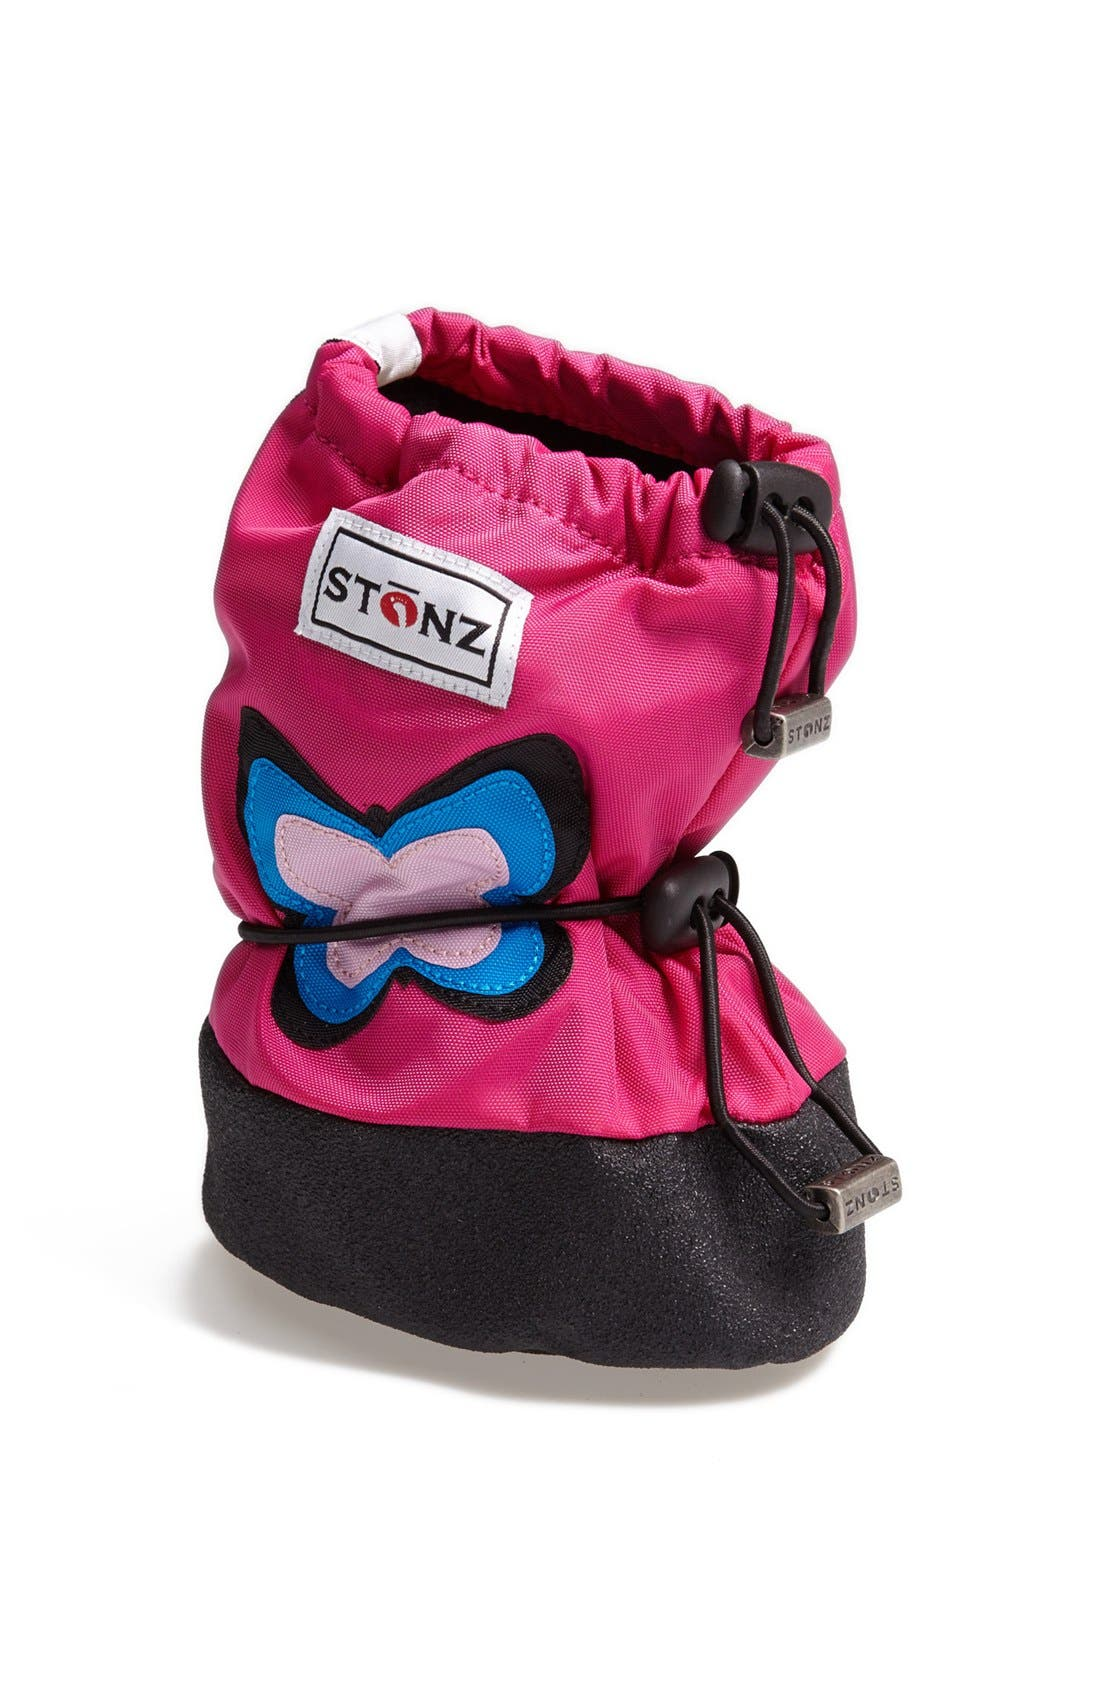 Main Image - Stonz 'Butterfly' Water Resistant Over-Shoe Bootie (Baby & Walker)